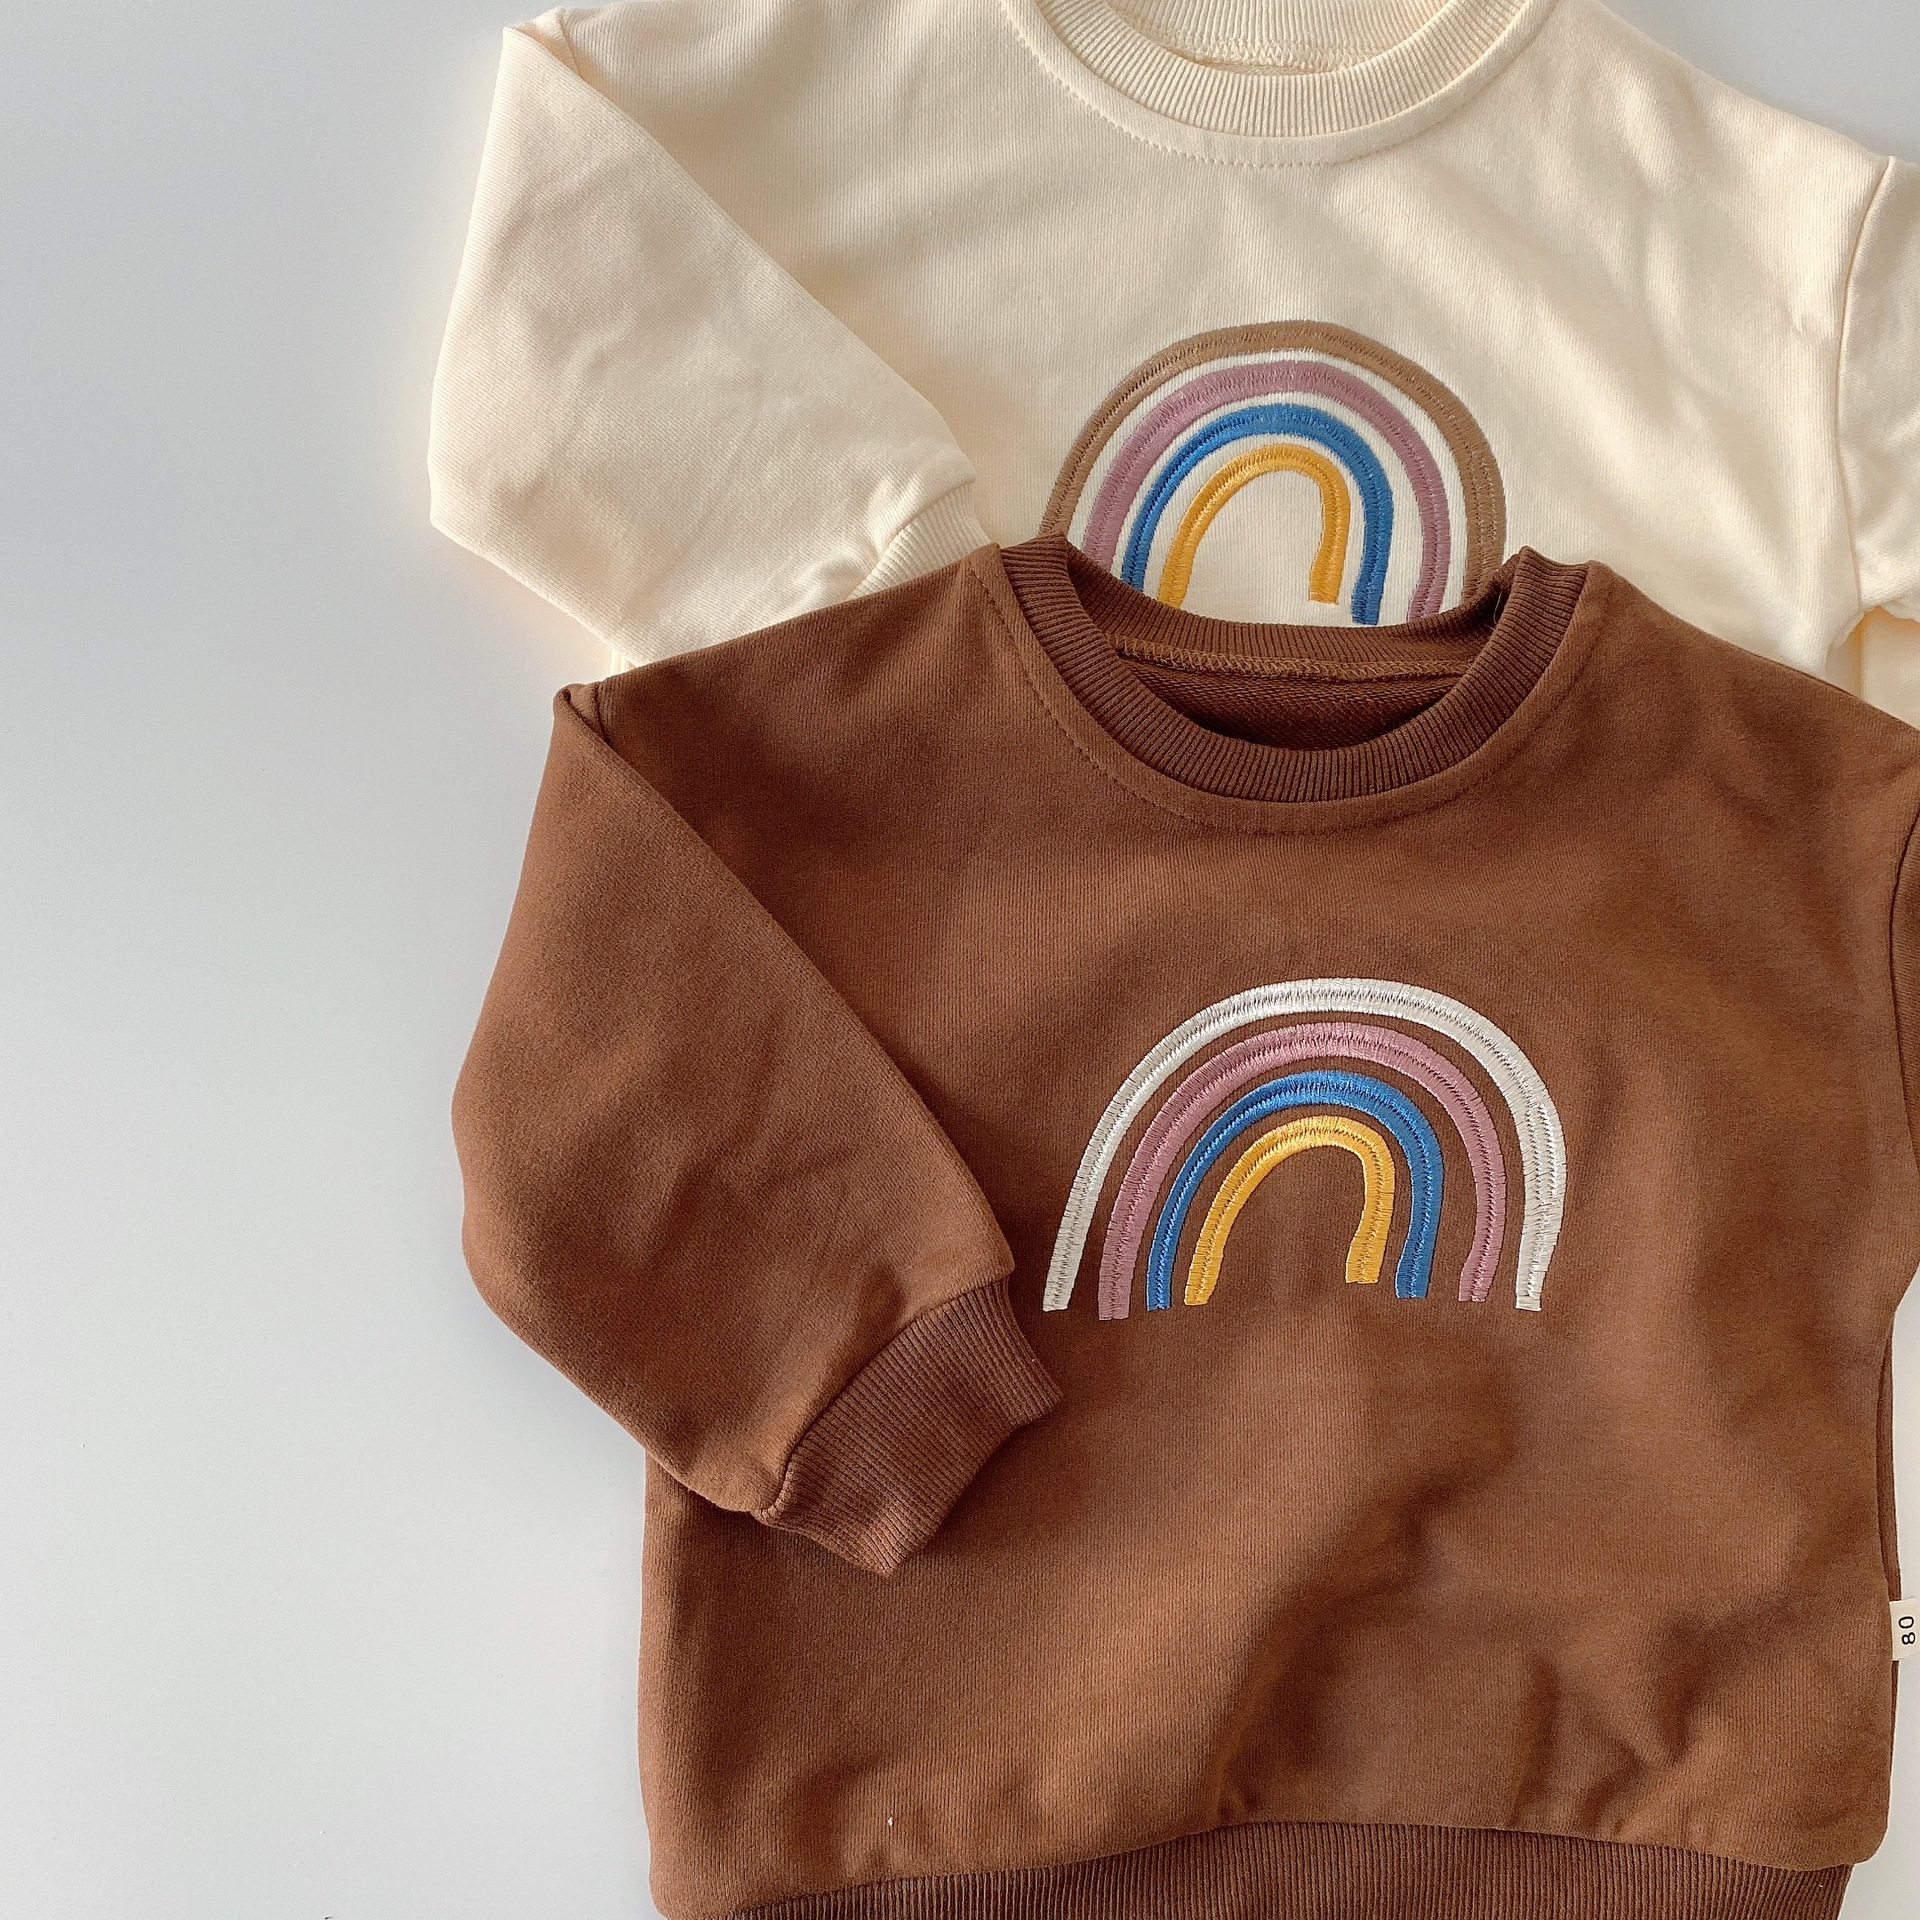 Autumn Baby Girls Embroidery Rainbow Sweatshirts Long Sleeve Tops Kids Toddler Boys Pullover Sweatshirt Rainbow T-shirt Clothes 1